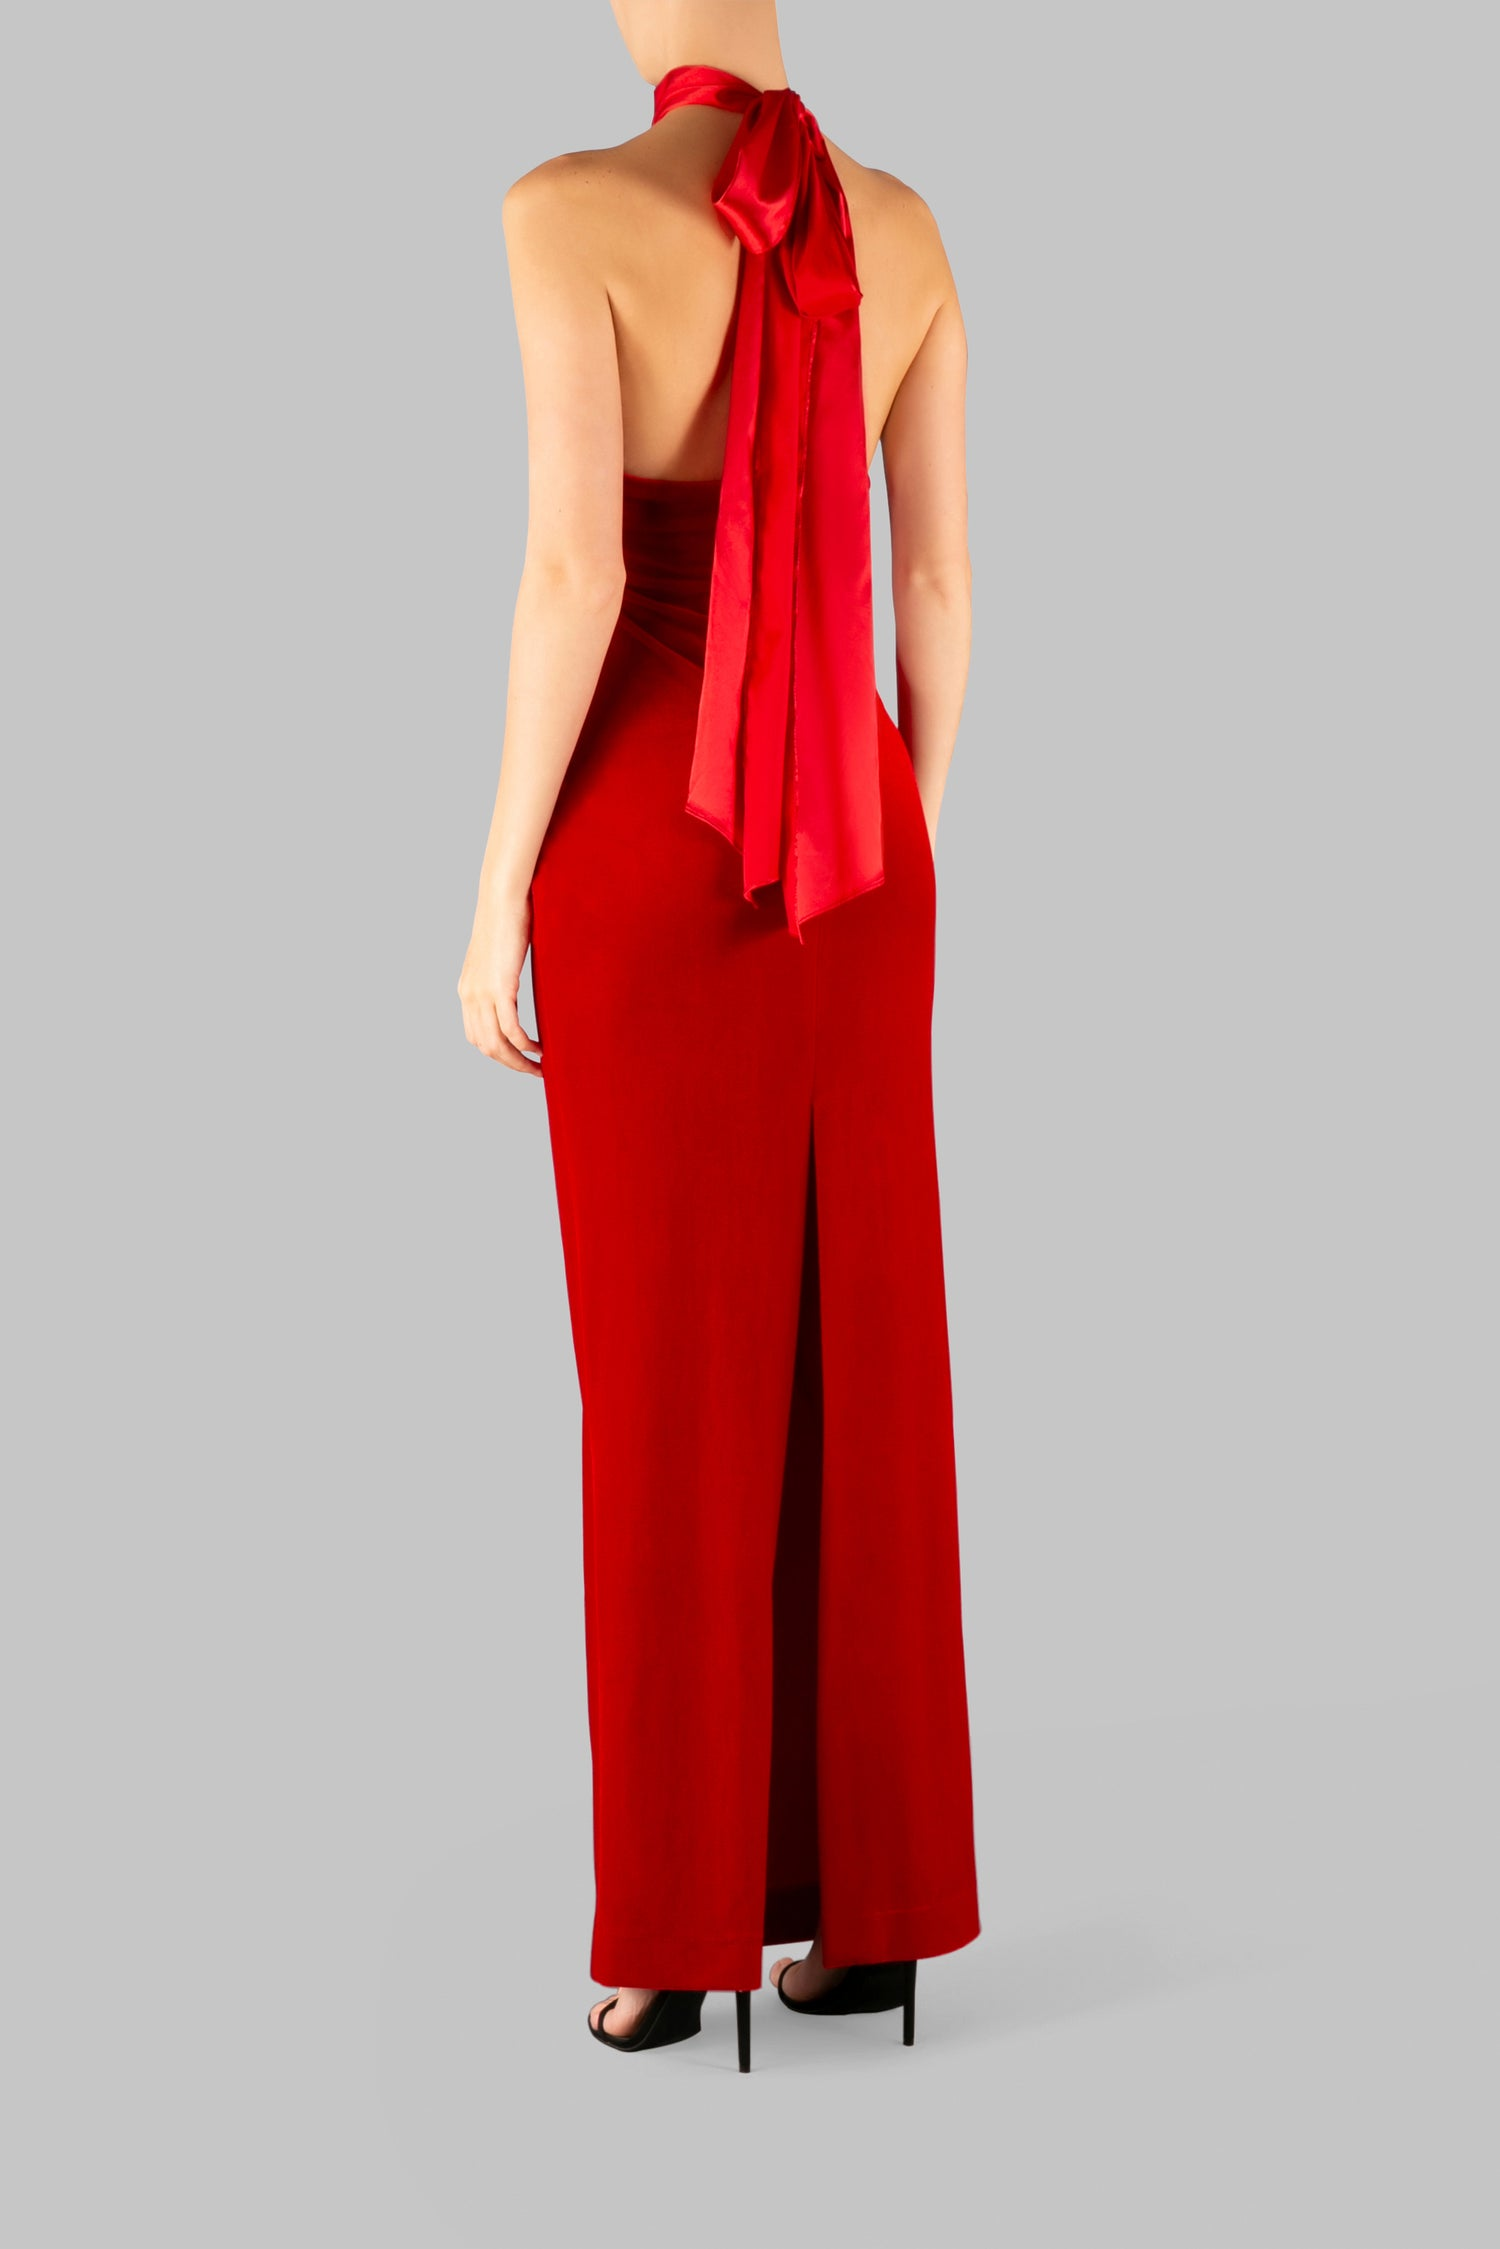 THE I LOVE YOU HALTER GOWN